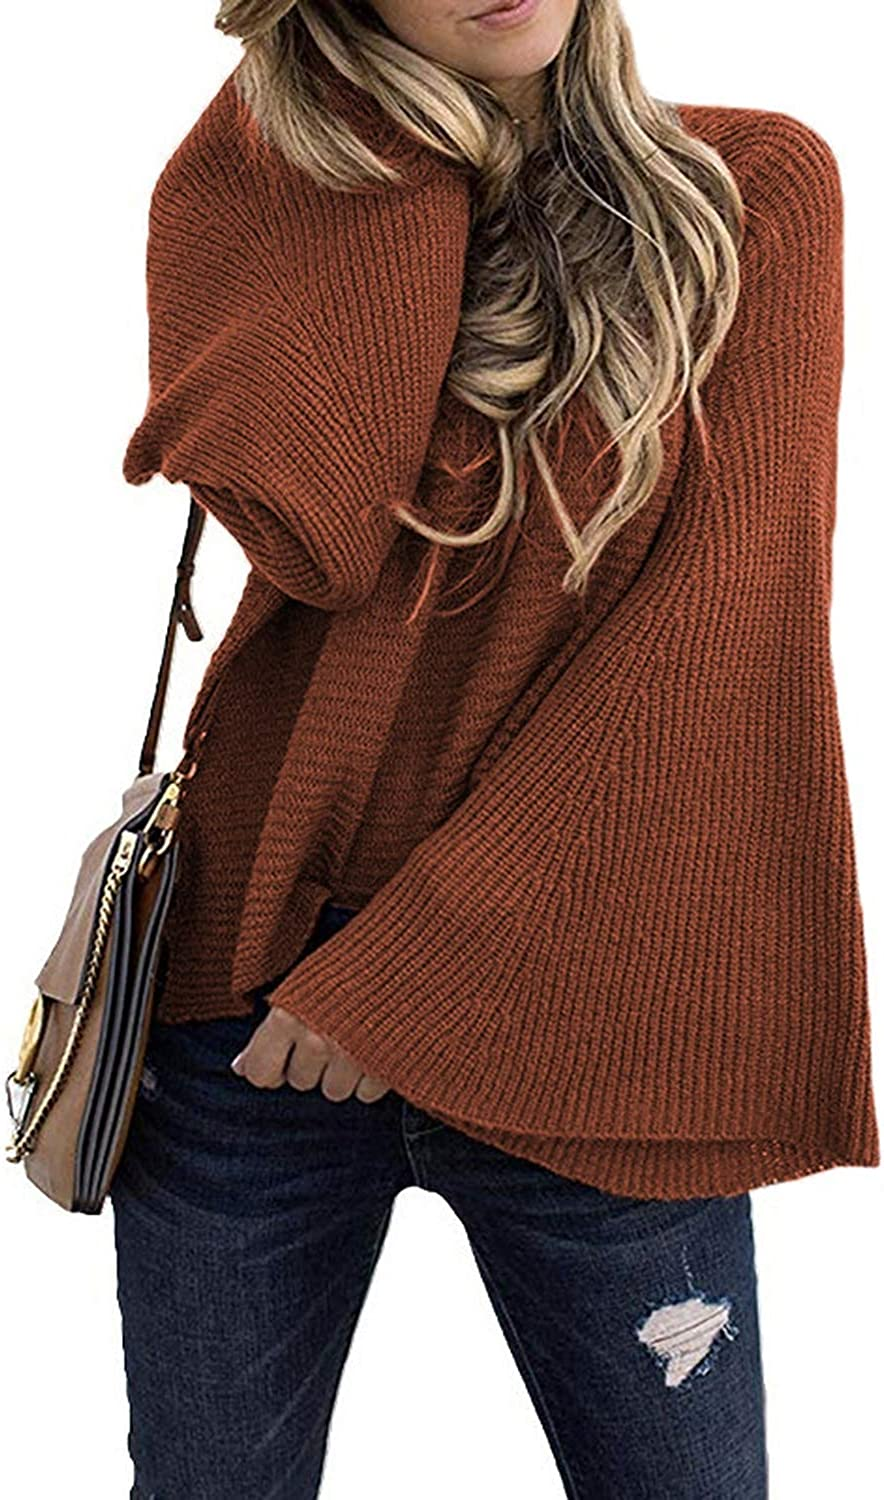 DLNCTD 2019 Christmas Flare Sleeve Pullovers o Neck Computer Knitted Casual Oversized Sweater Plus Size Winter